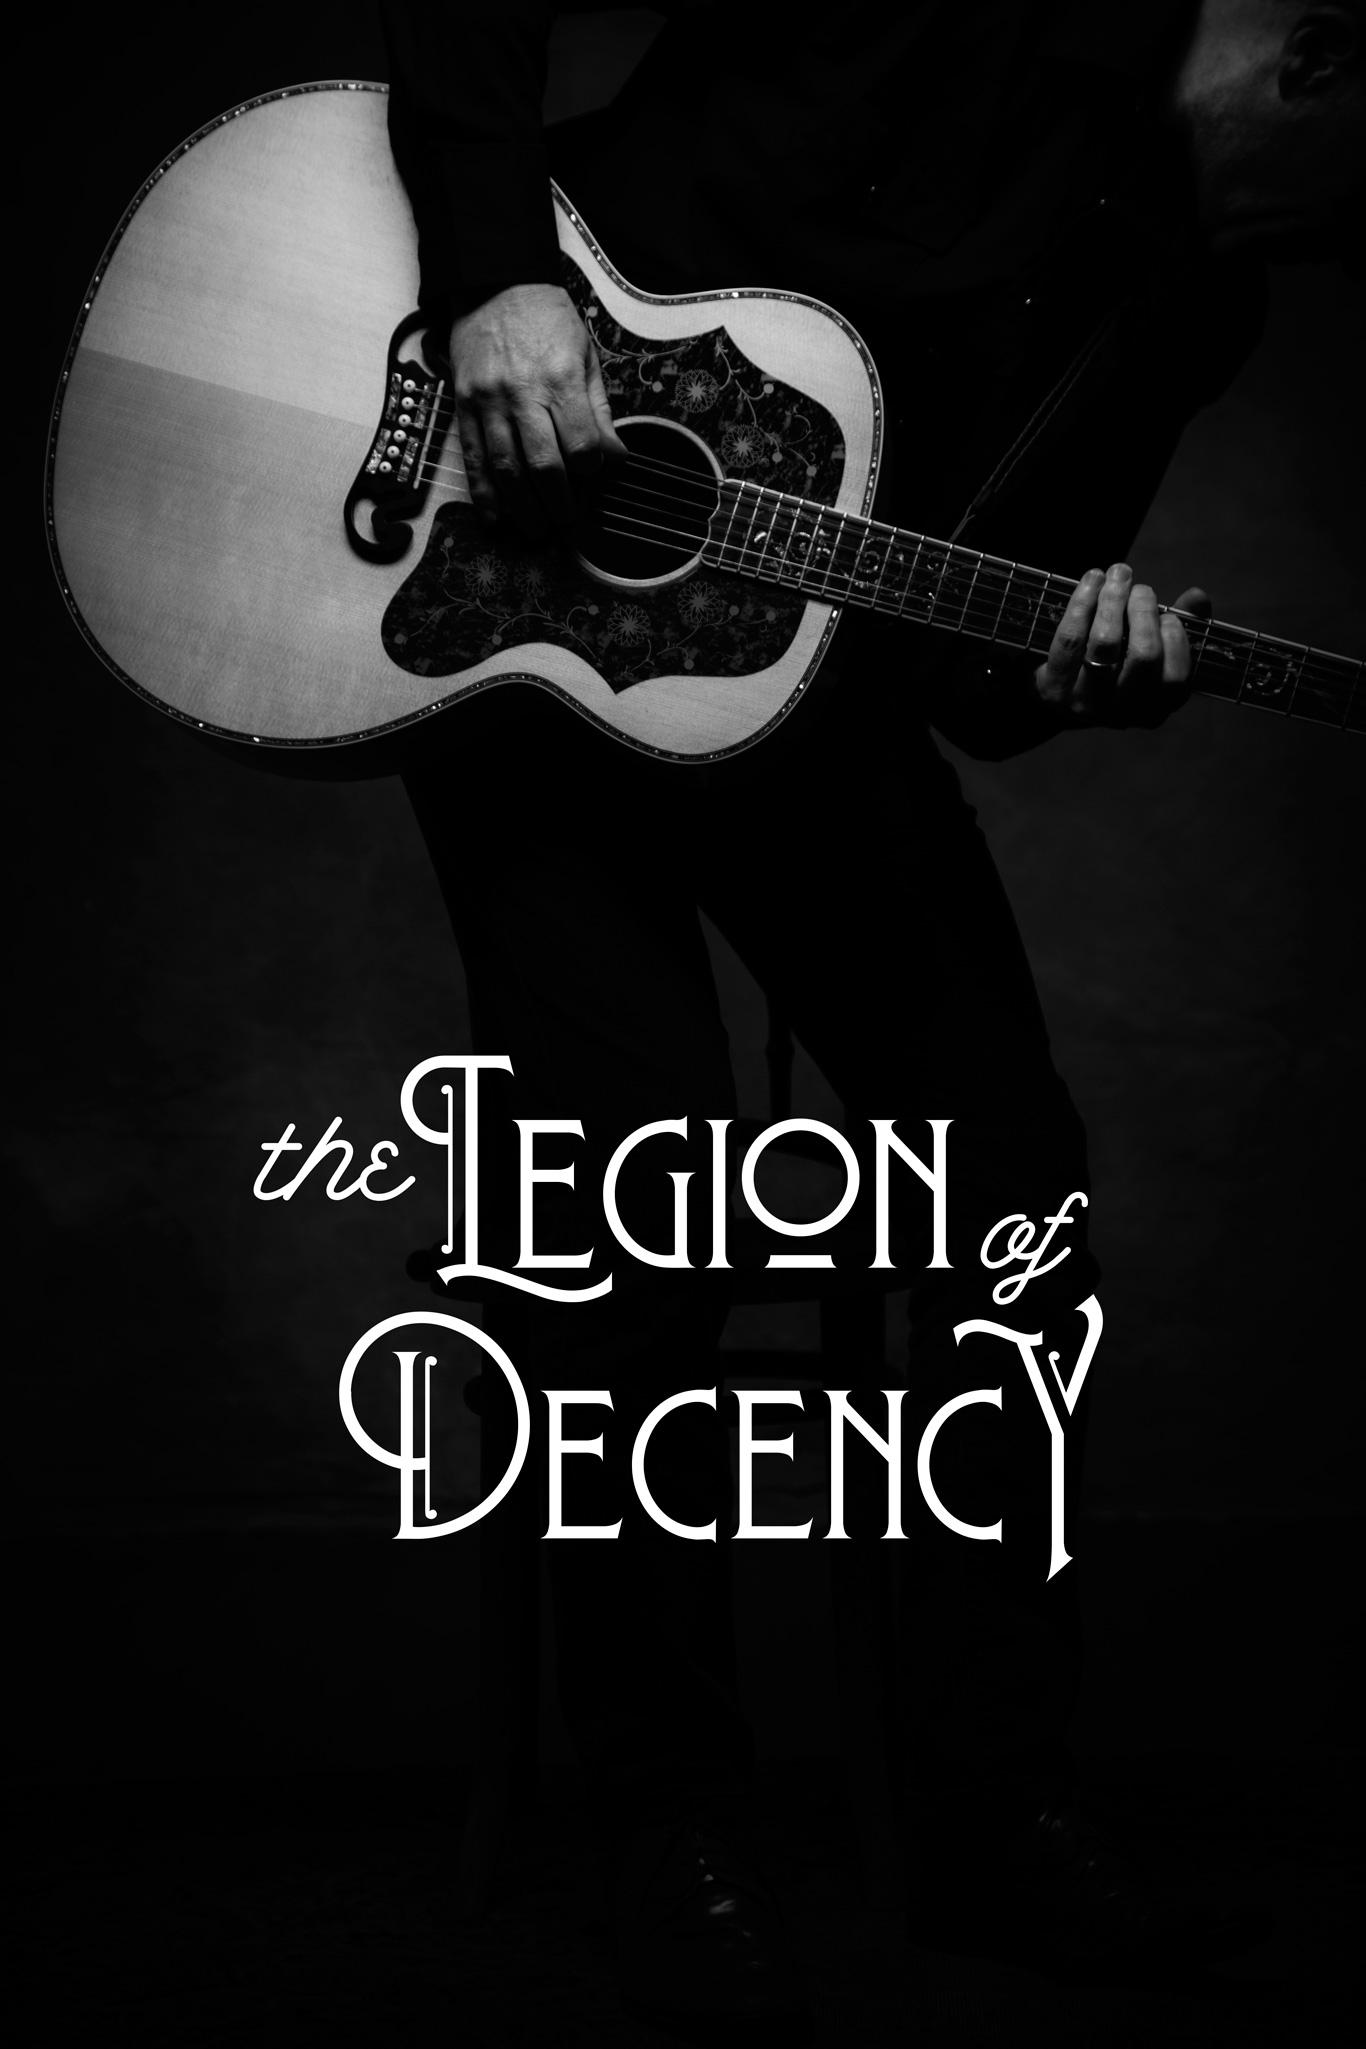 The Legion of Decency